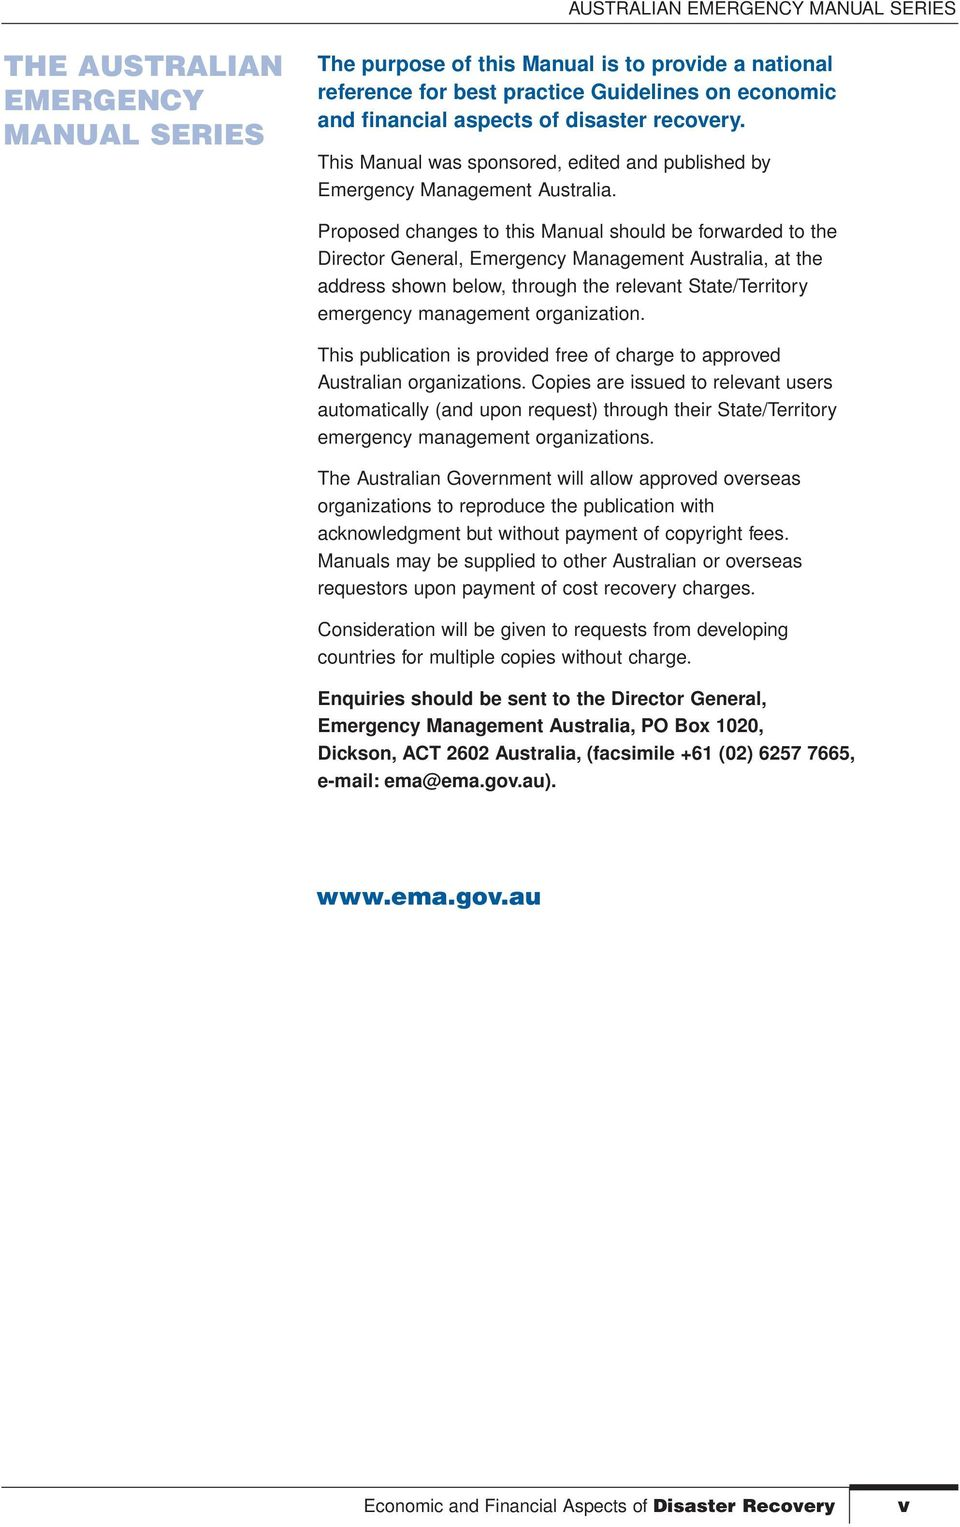 Proposed changes to this Manual should be forwarded to the Director General, Emergency Management Australia, at the address shown below, through the relevant State/Territory emergency management